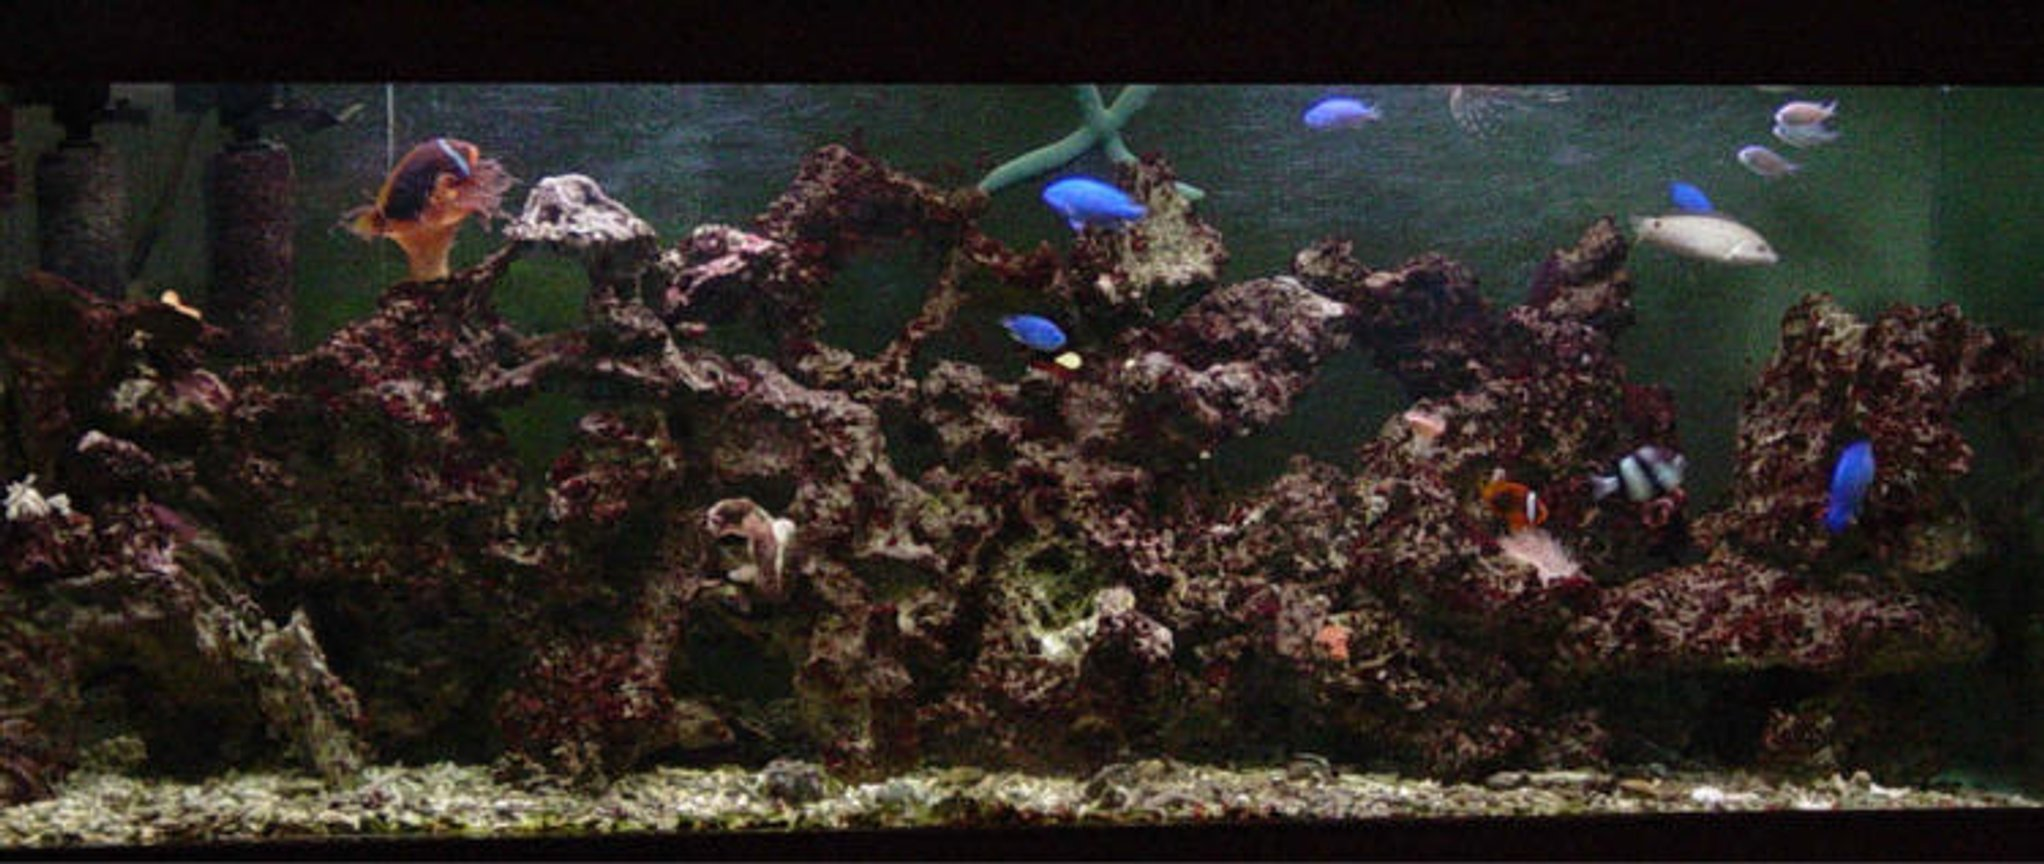 reef tank (mostly live coral and fish) - 100 Gal salt water tank.